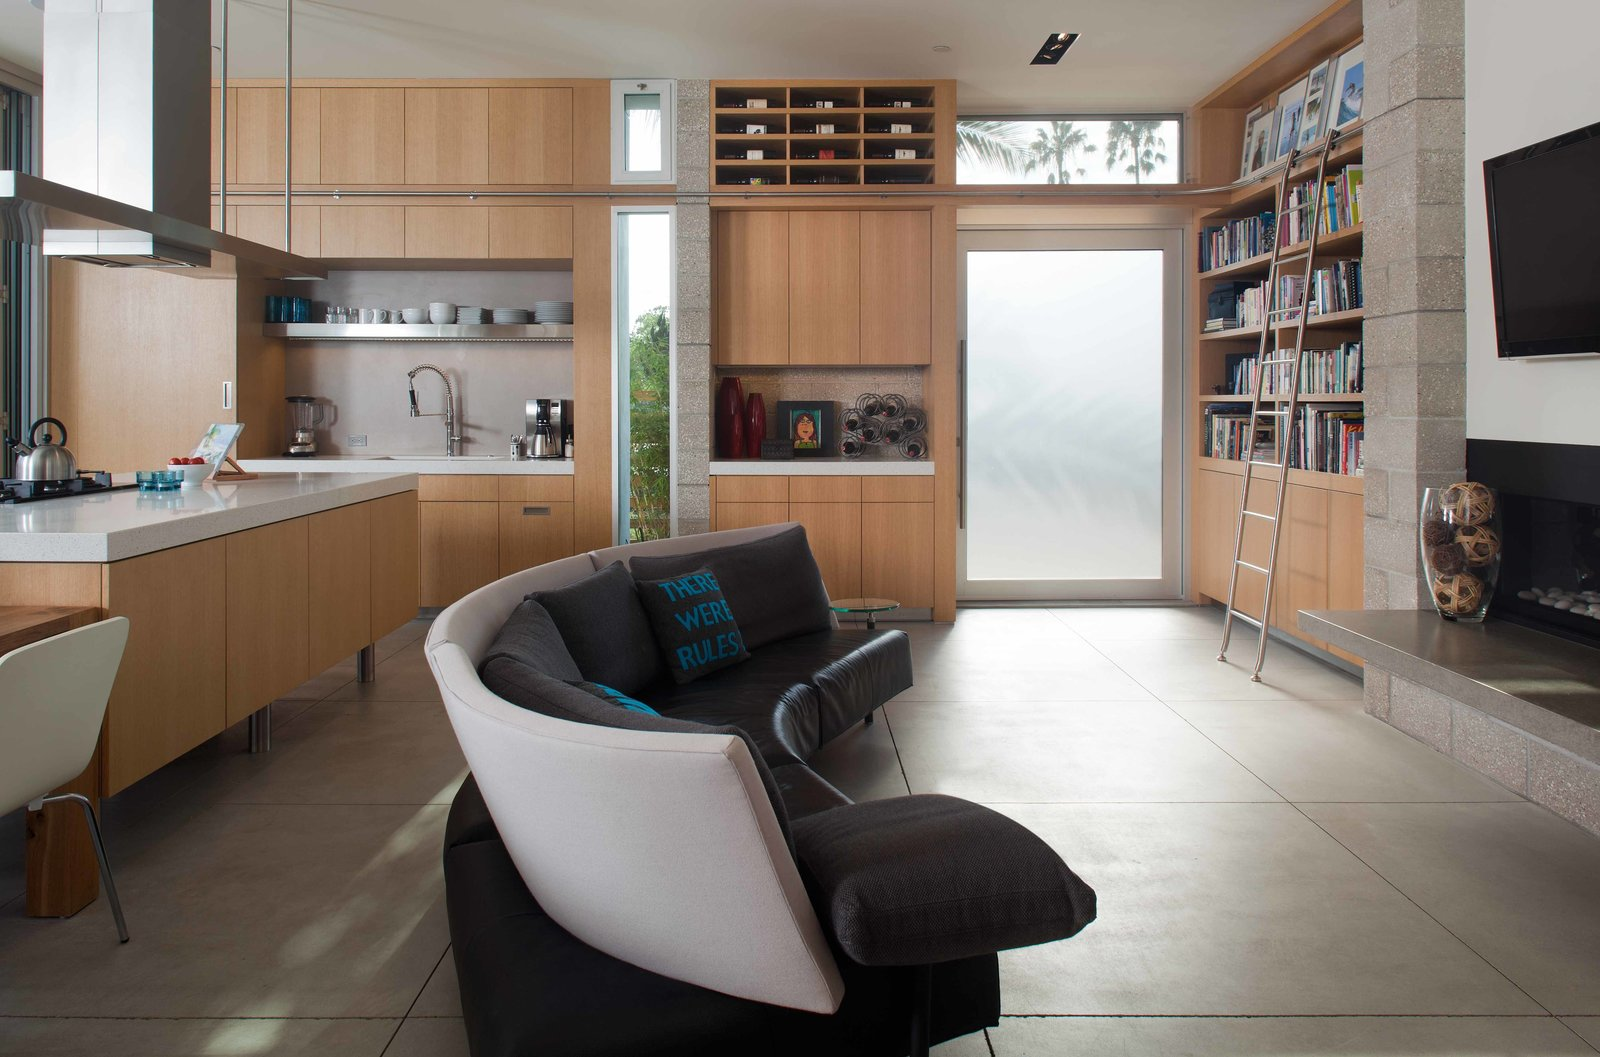 The living room couch—a semi-circle design by Niels Bendtsen—is the centerpiece of the open-plan living space. The rolling kitchen ladder is by Bartels Doors, and the kitchen island, pantry, and cabinets were custom made by Hill Construction Company.